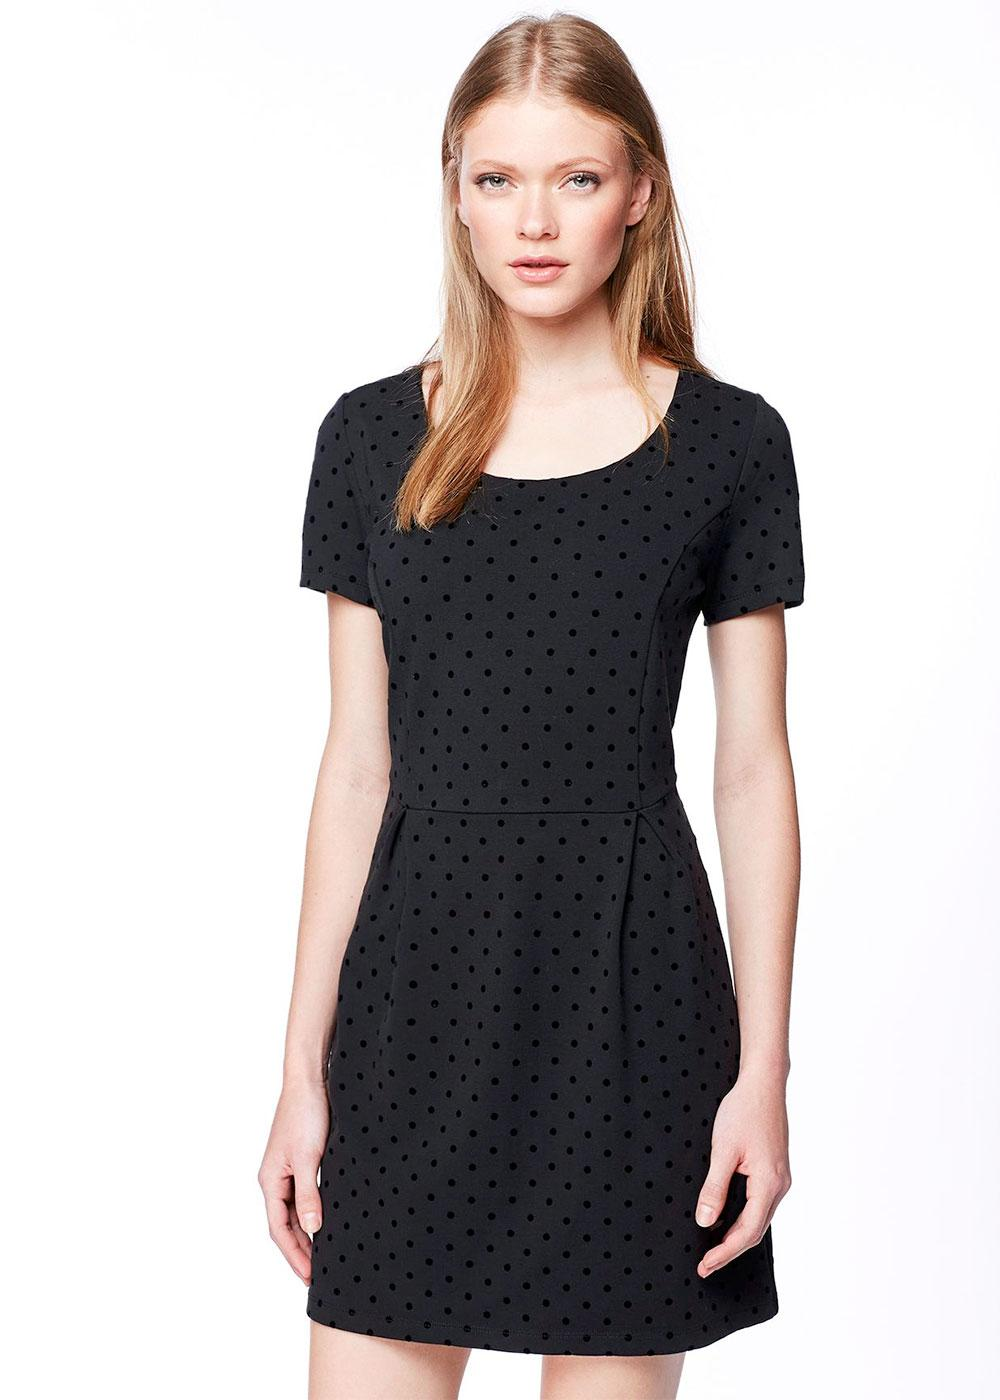 Elsa PEPE JEANS Retro Mod Tonal Polka Dot Dress